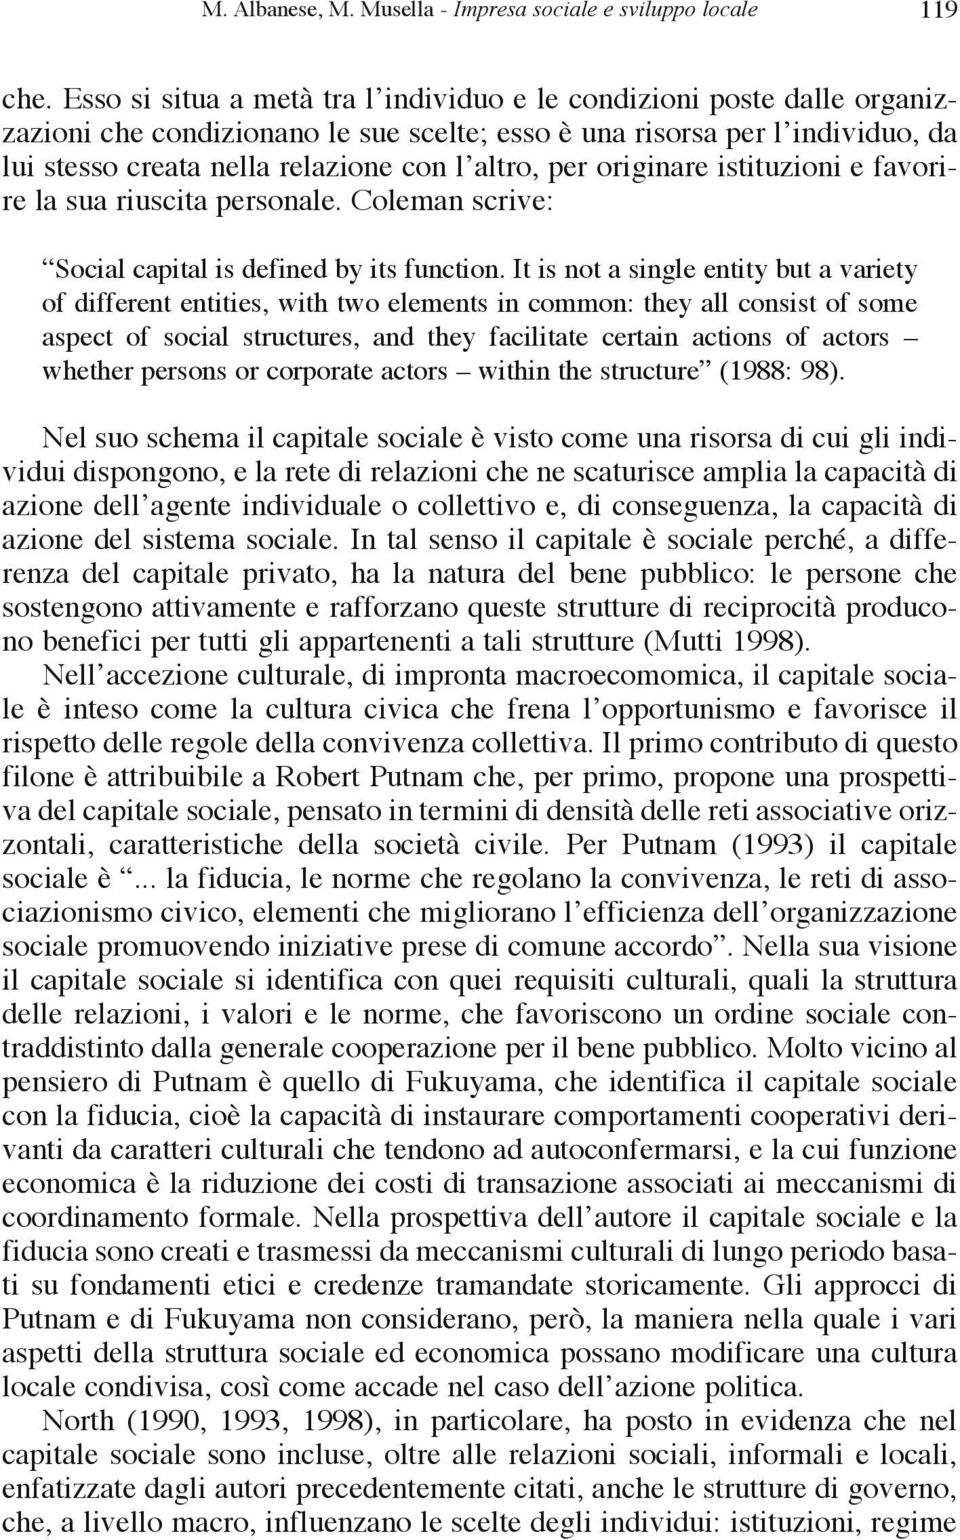 per originare istituzioni e favorire la sua riuscita personale. coleman scrive: Social capital is defined by its function.